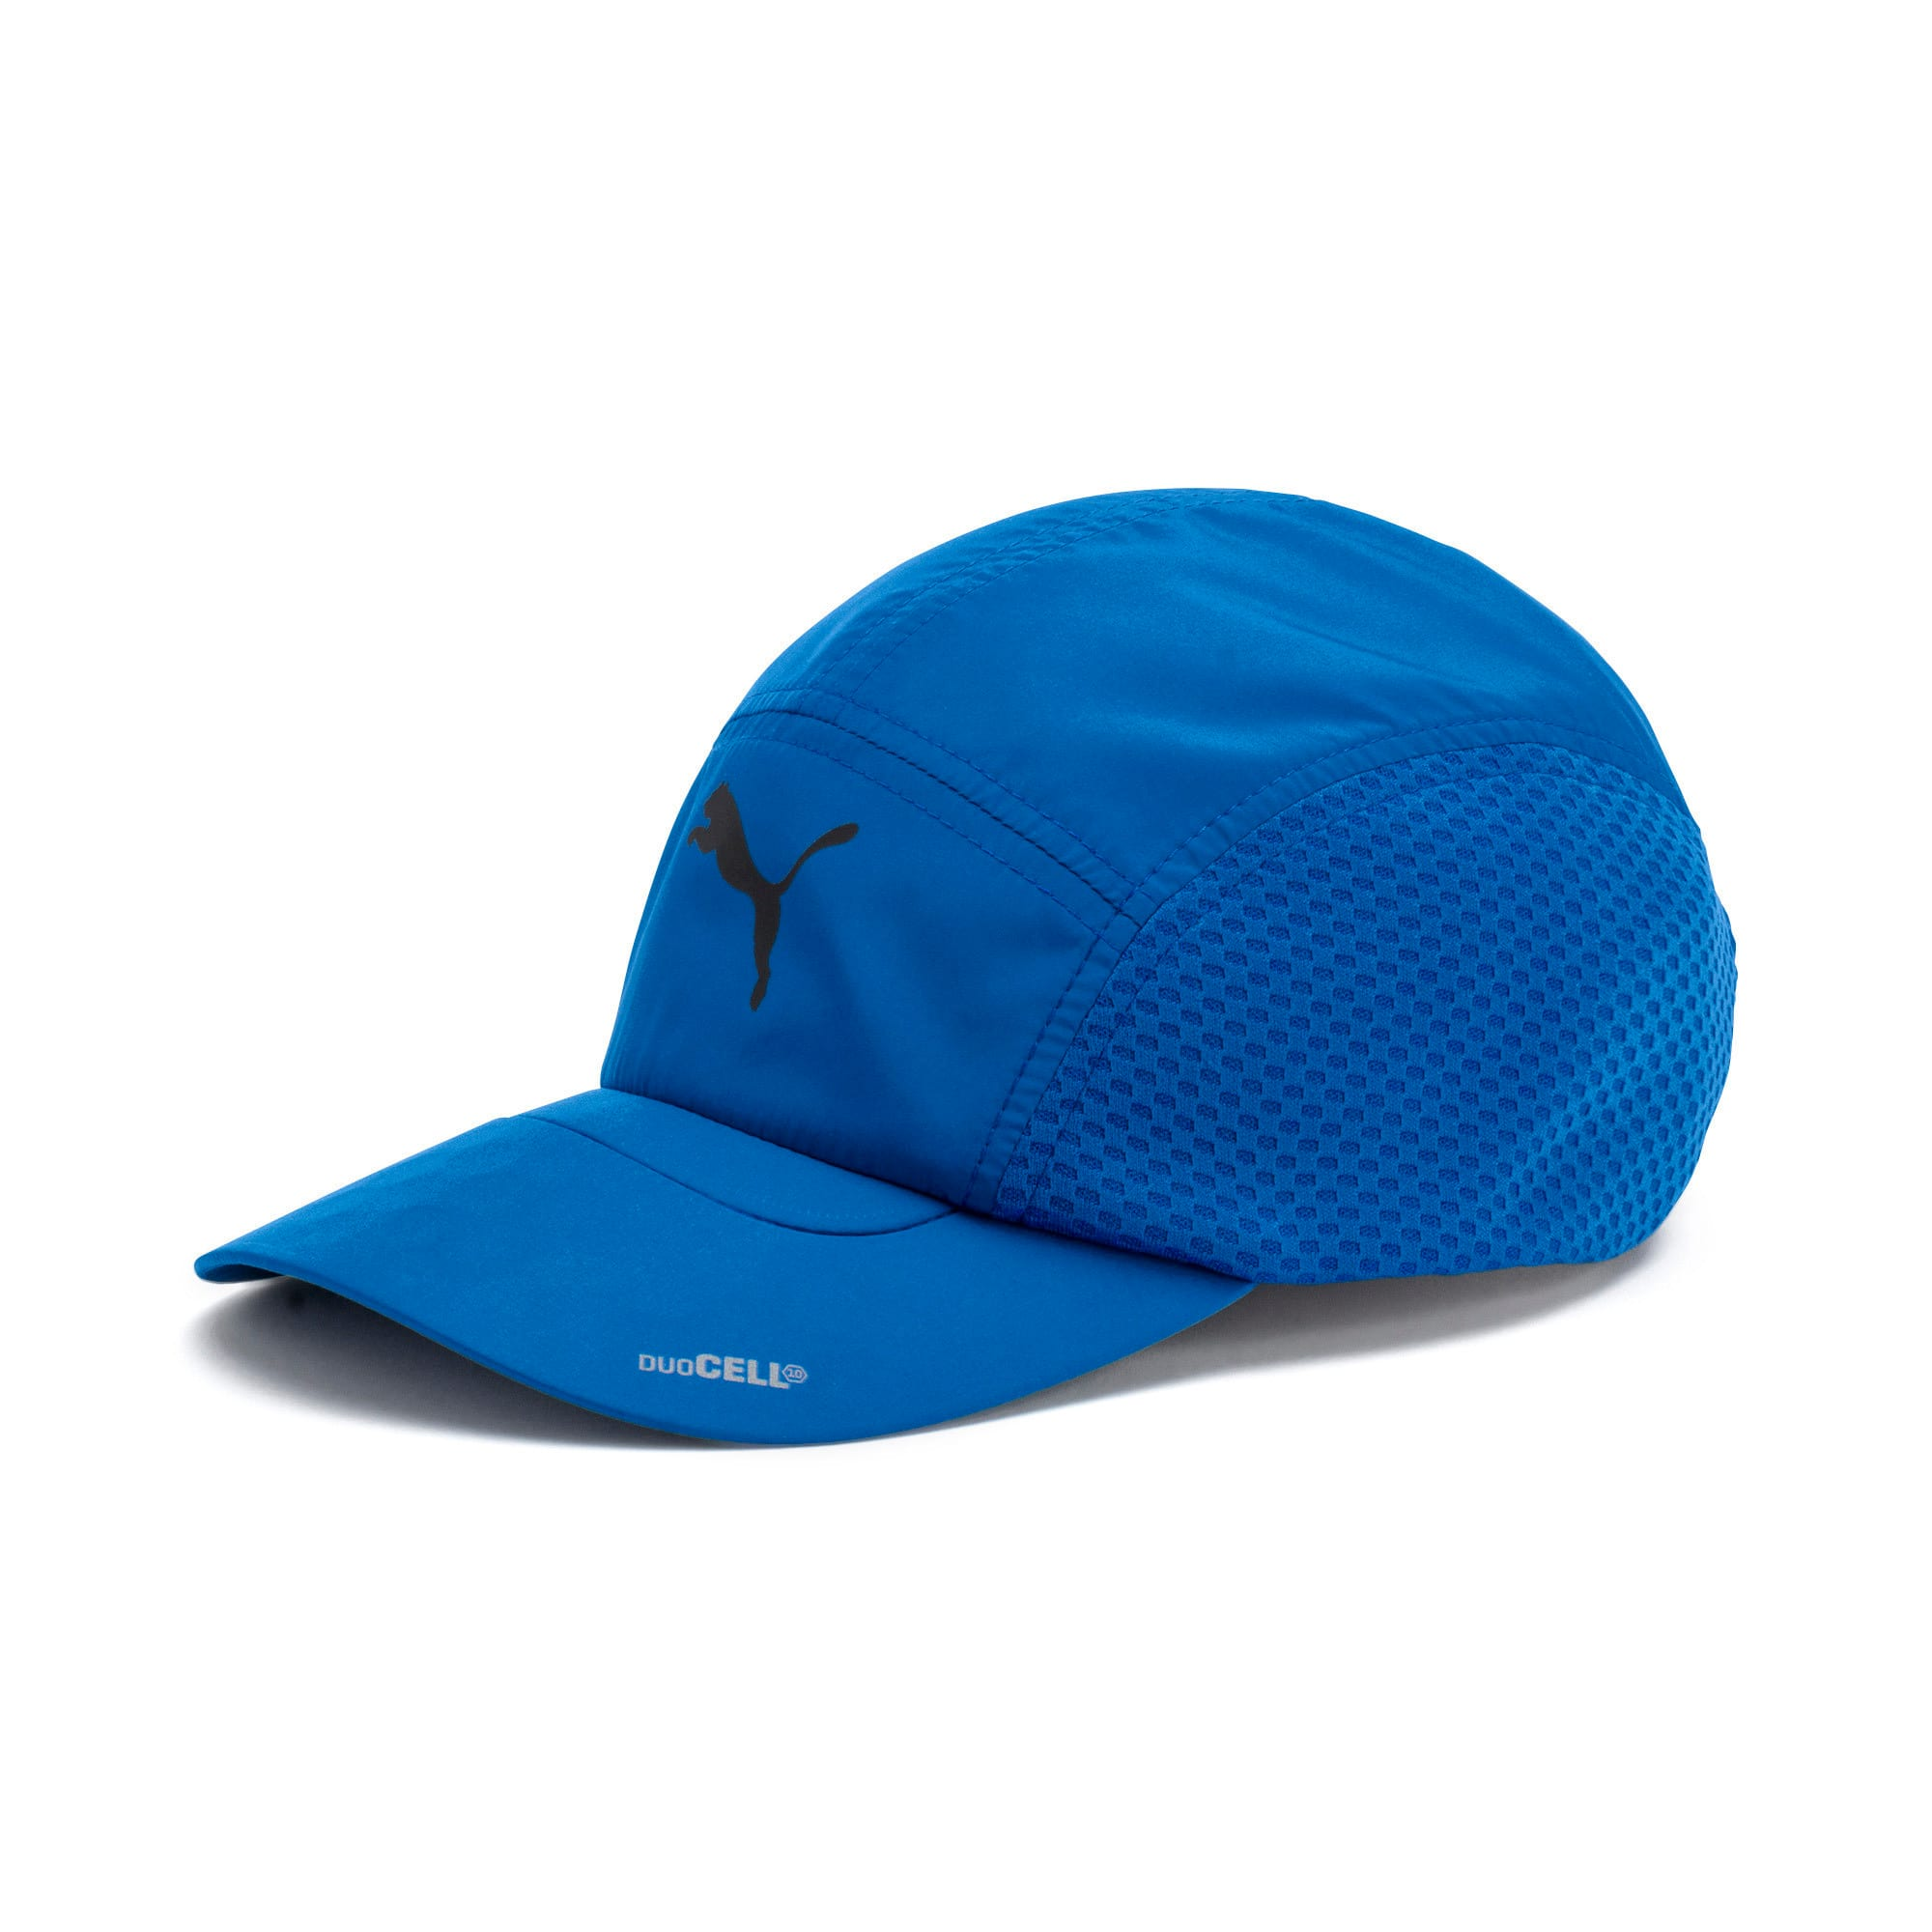 Thumbnail 1 of duoCELL Running Cap II, Strong Blue, medium-IND